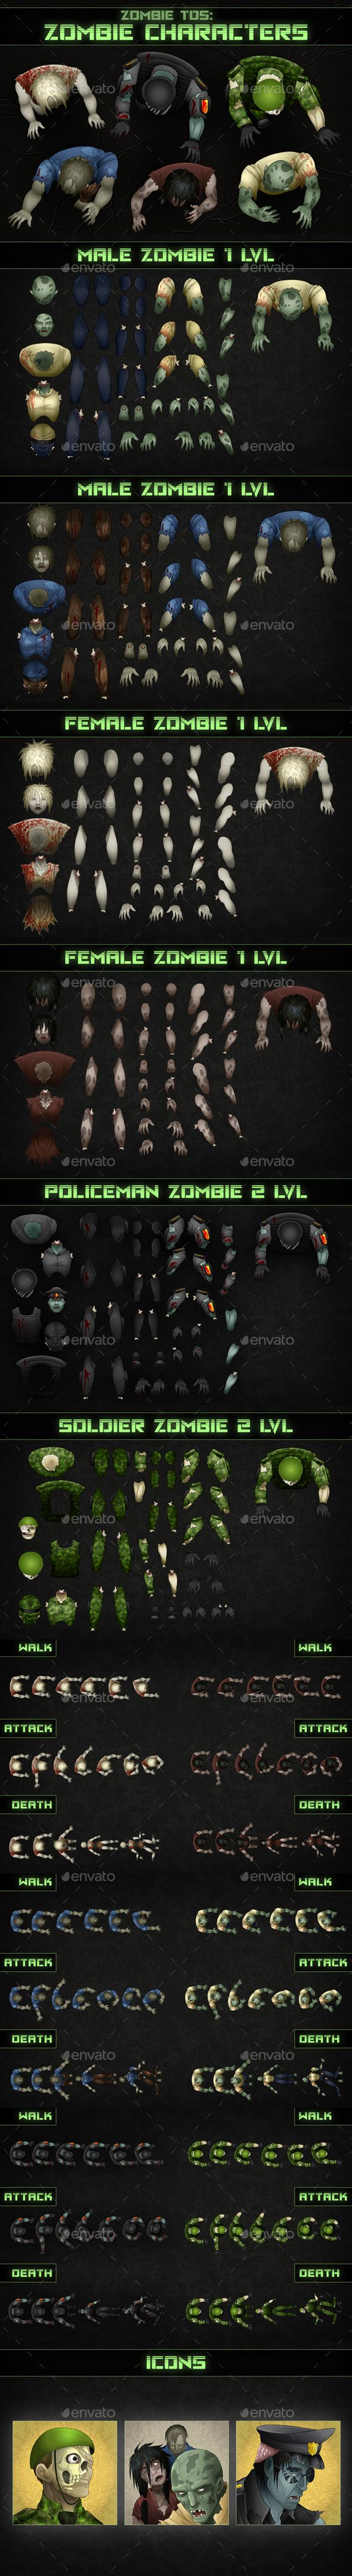 #Top-Down Shooter: Zombie - Sprites #Game #Assets